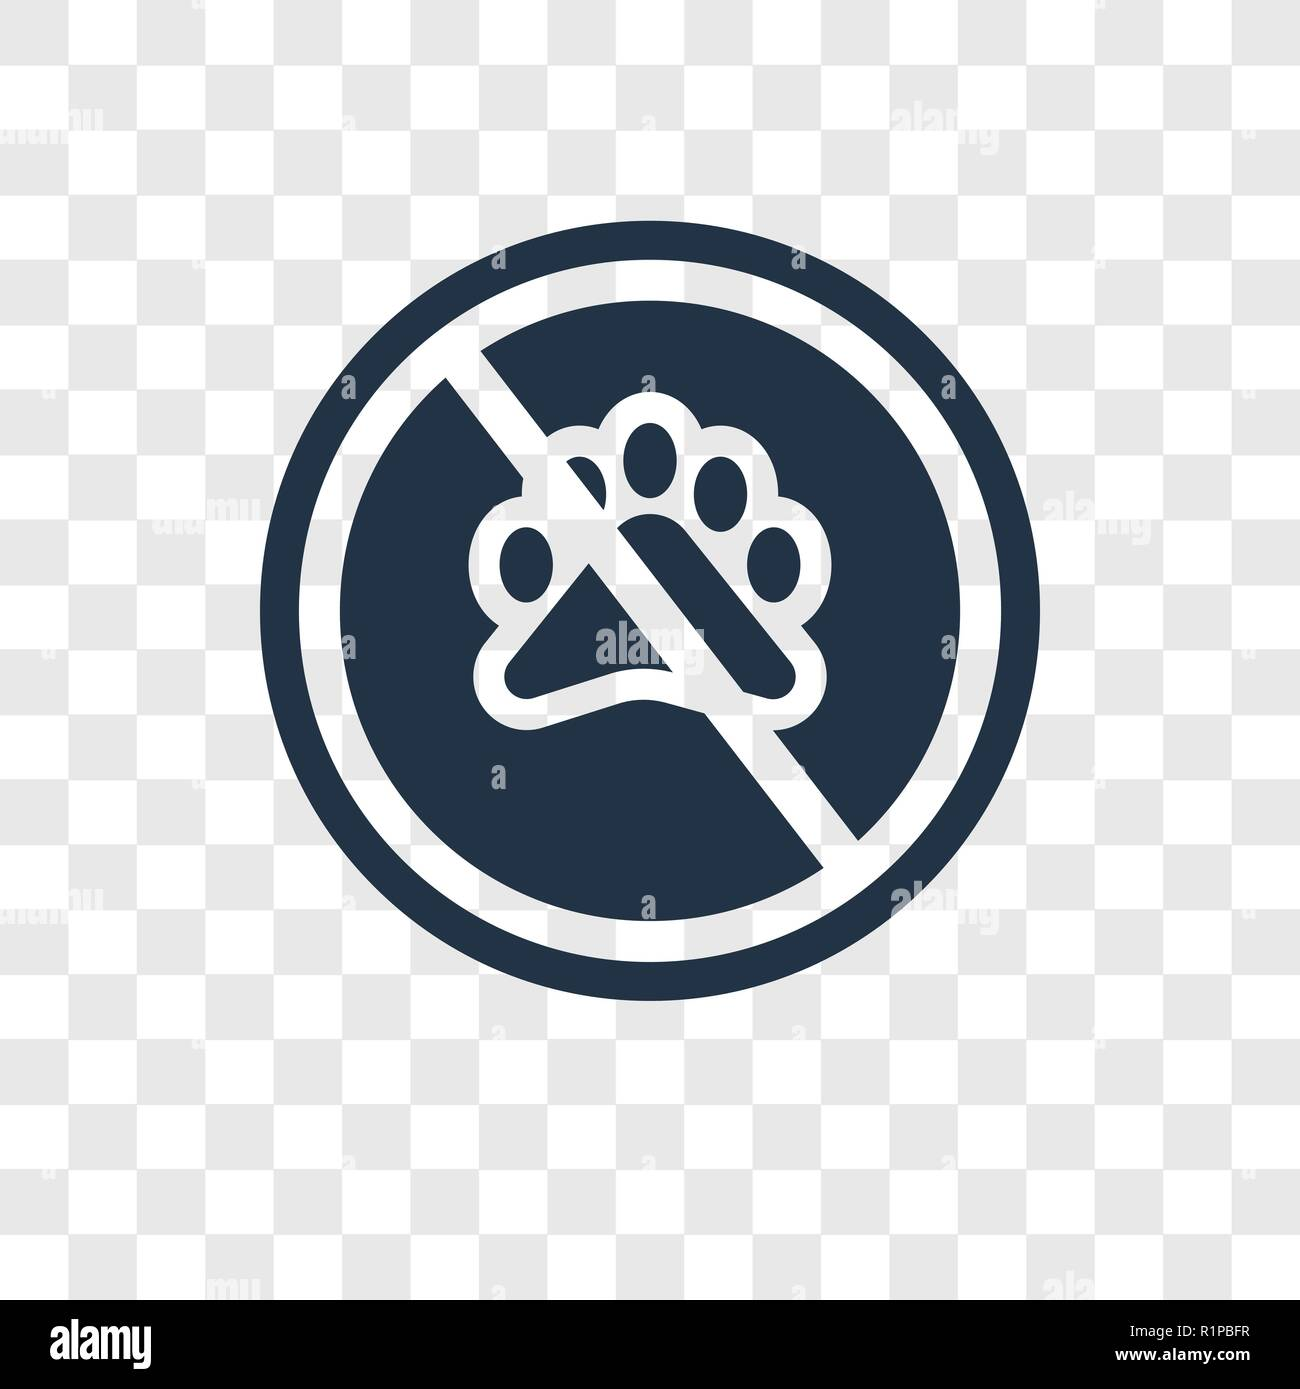 No animals vector icon isolated on transparent background, No animals transparency logo concept Stock Vector